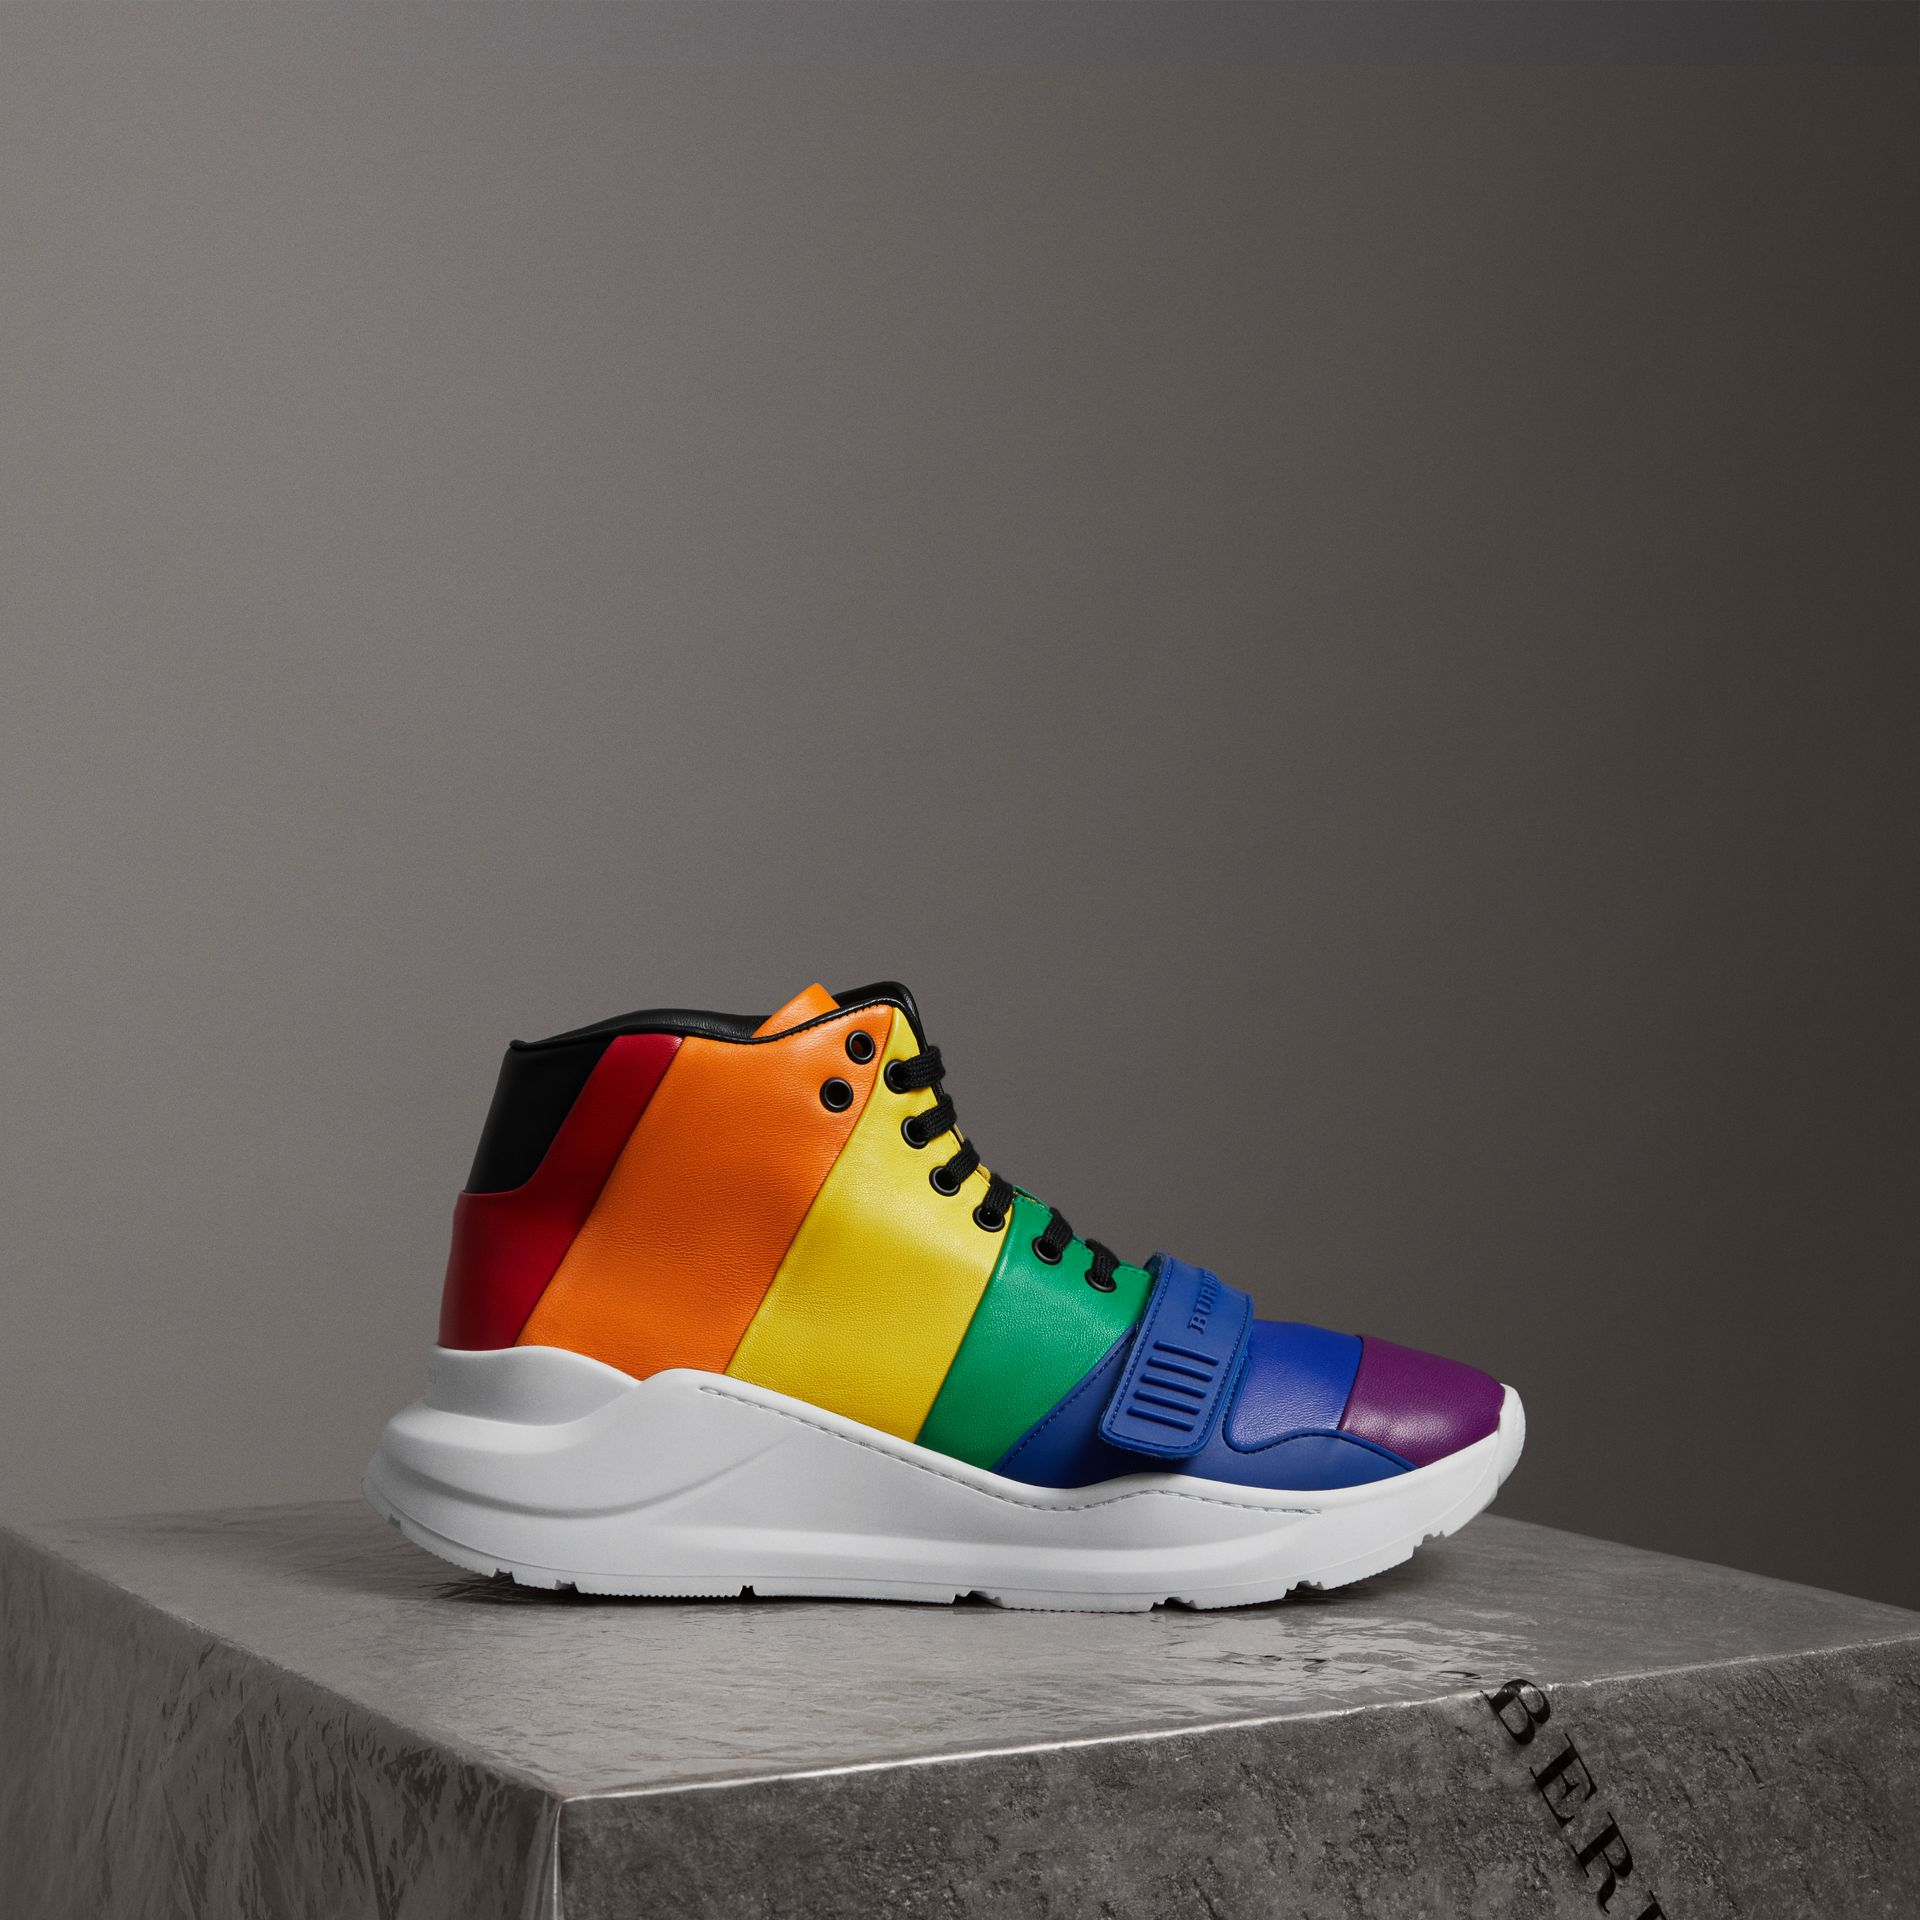 Sneakers montantes en cuir arc-en-ciel | Burberry - photo de la galerie 0